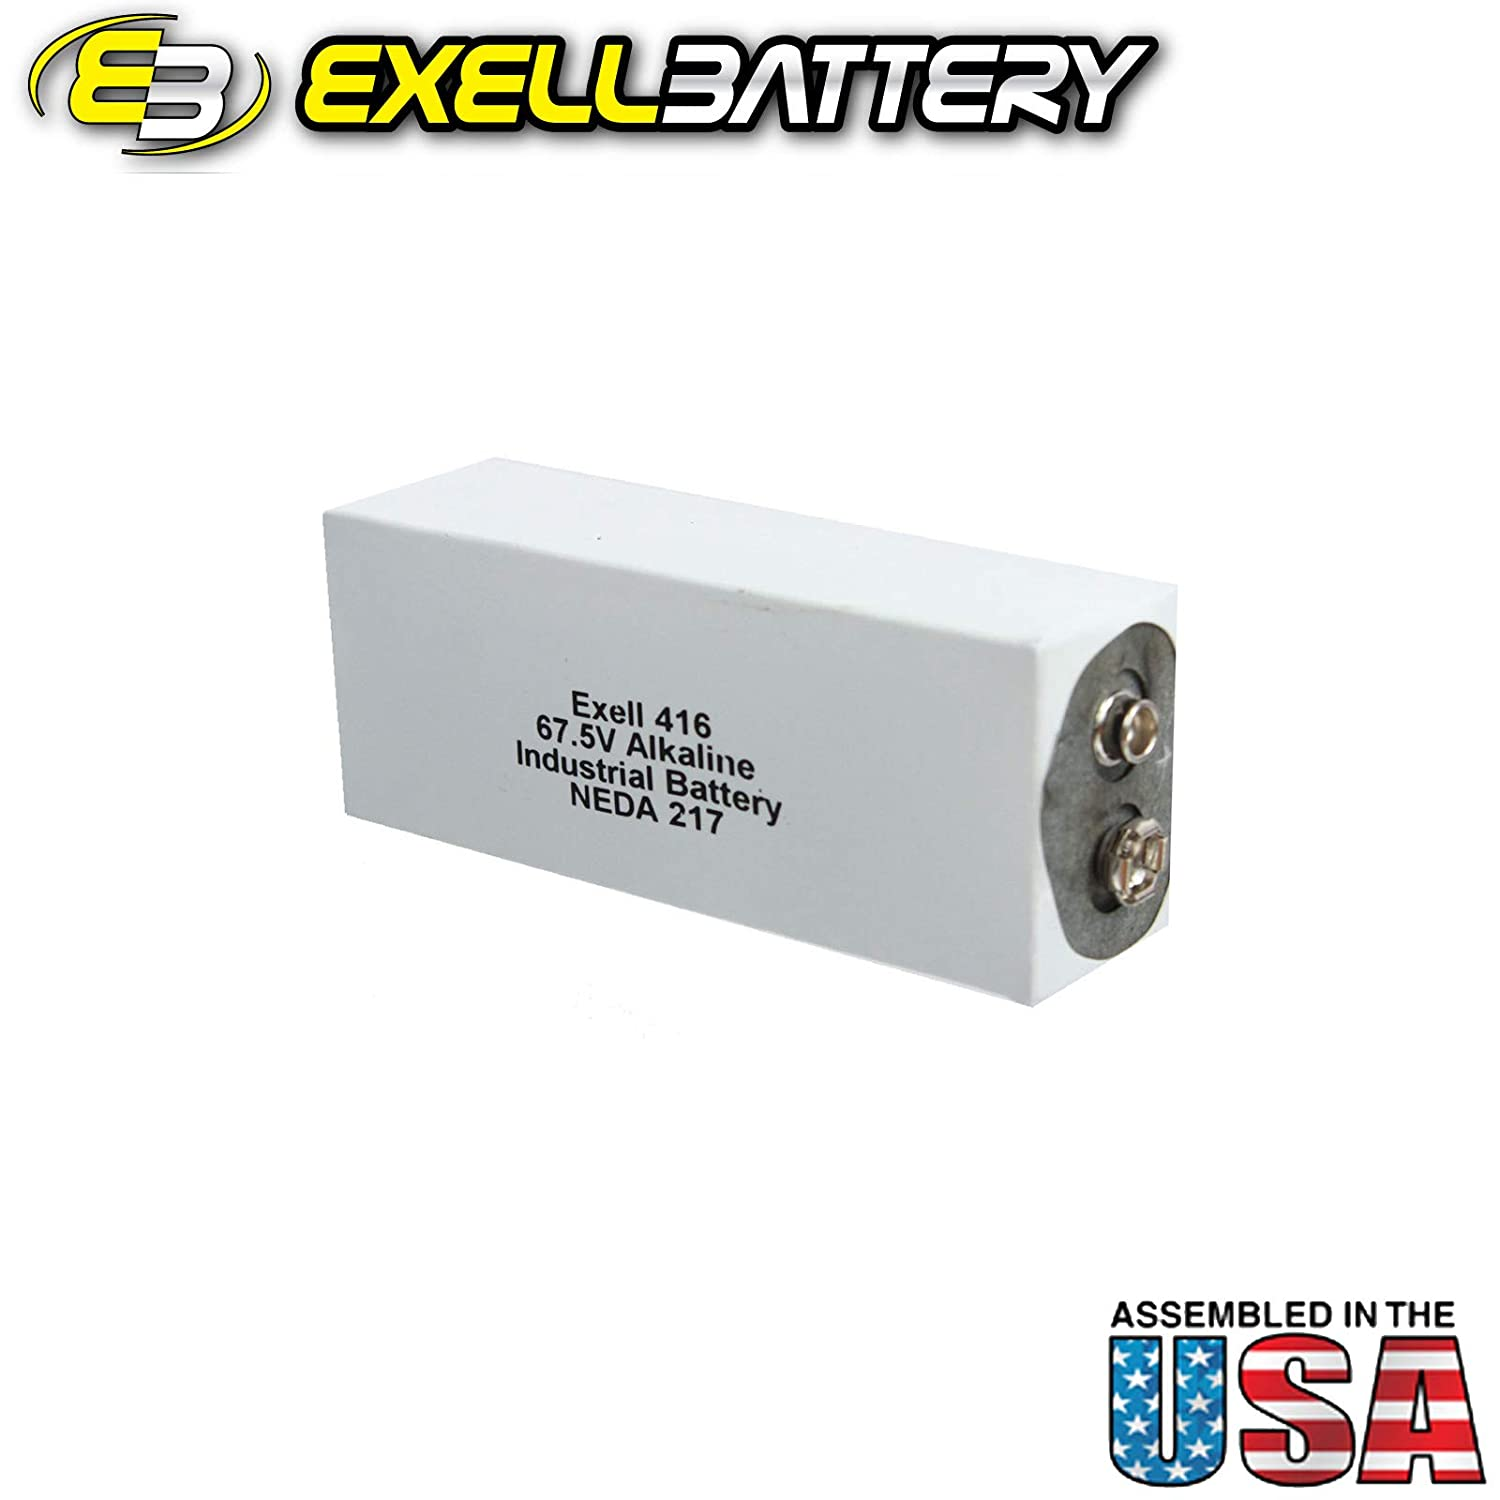 The 416A is a battery replacement for the ER-416 battery